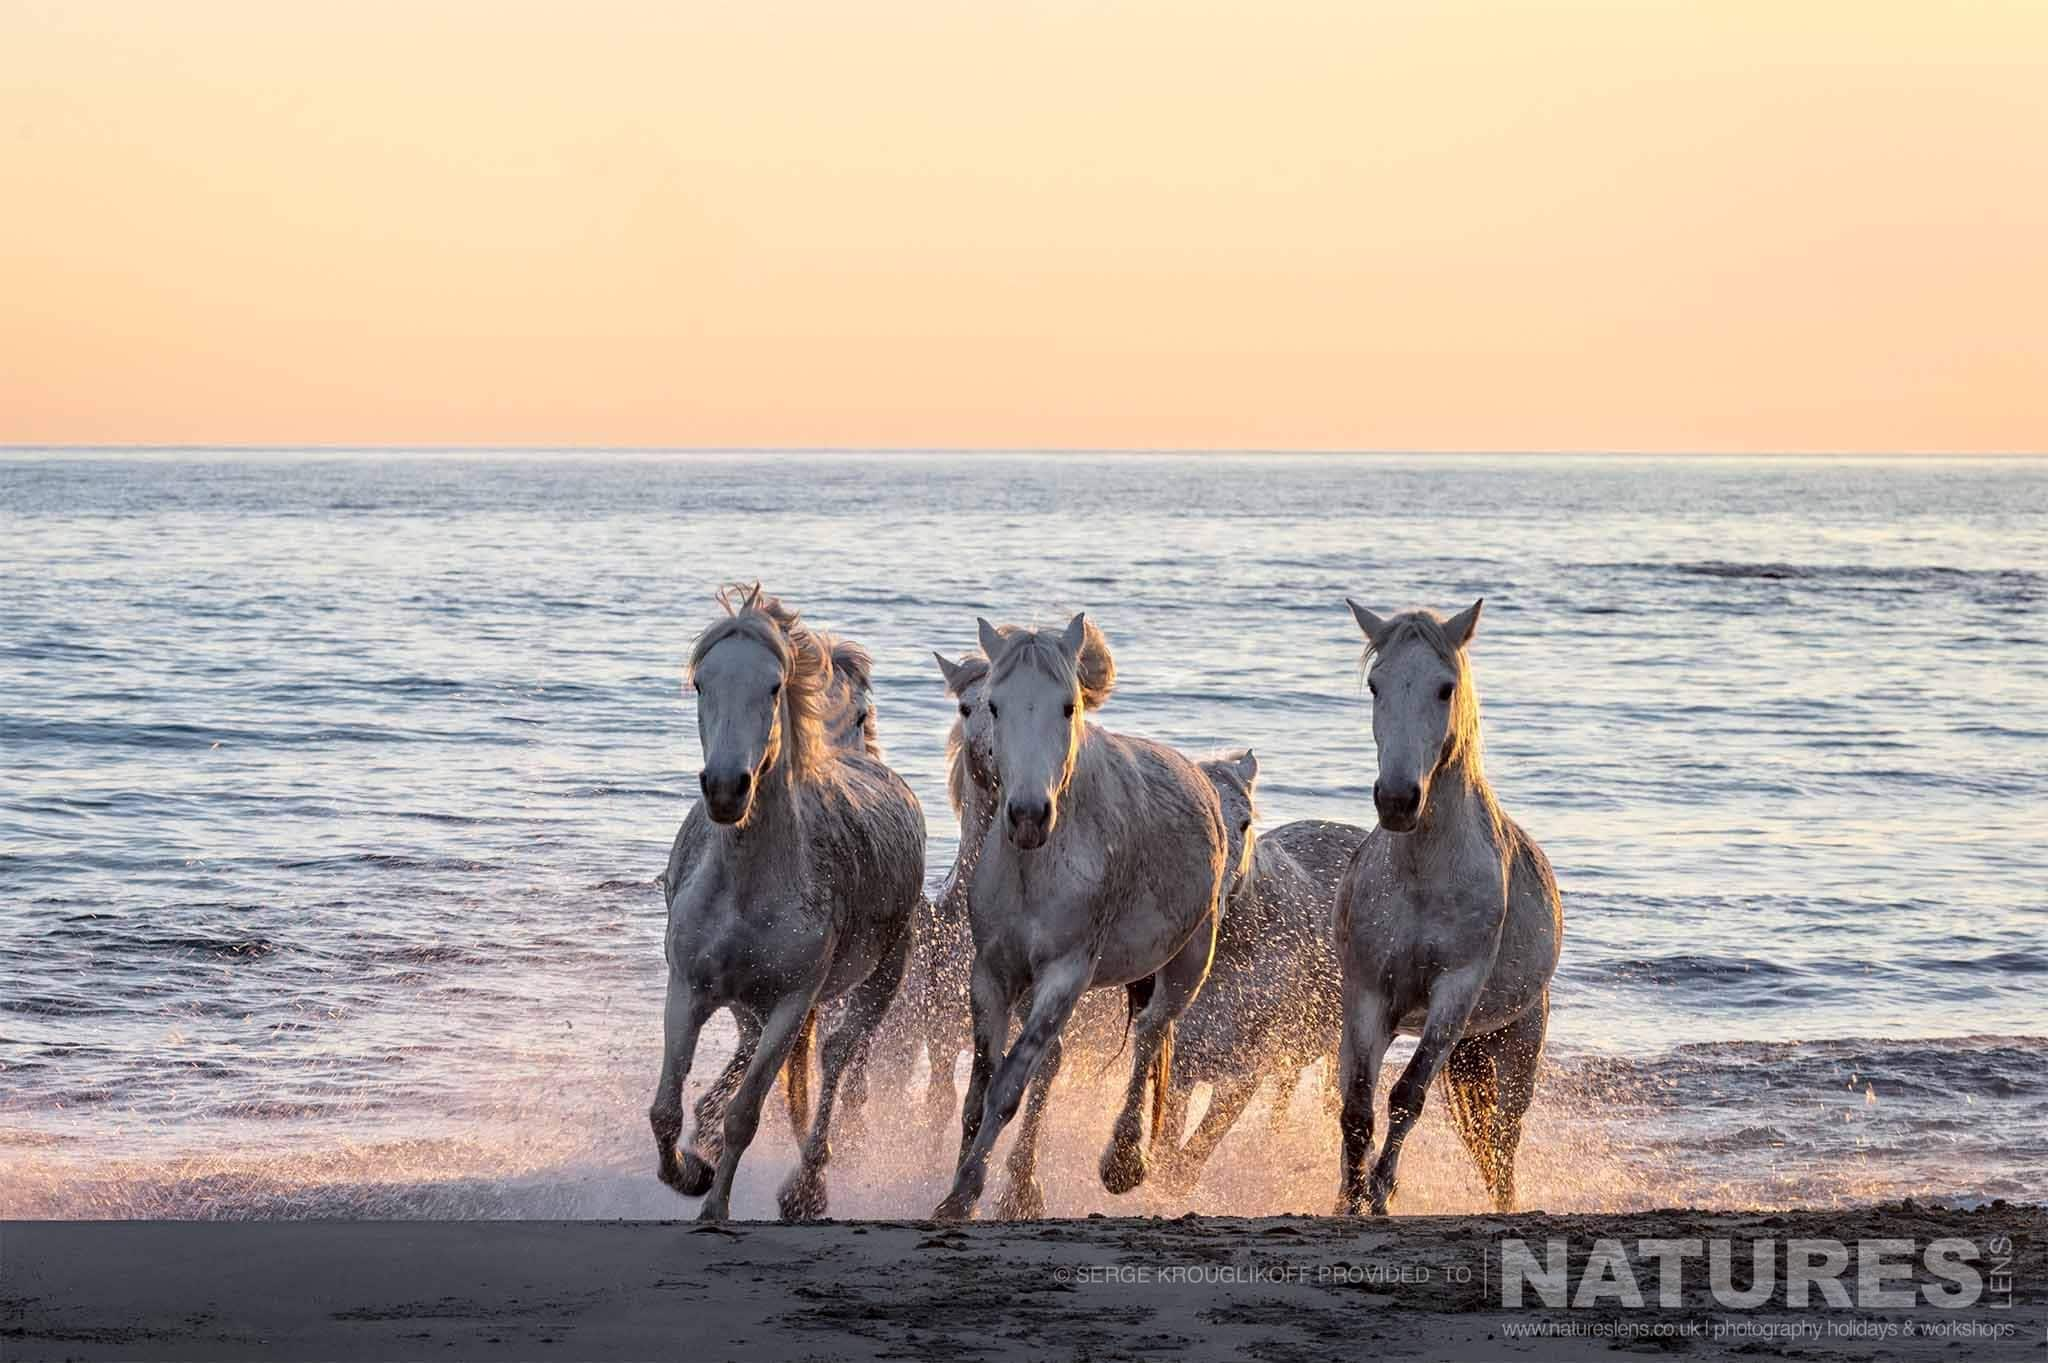 A Group Of The White Horses Of The Camargue Charges Through The Surf   Image Captured During A White Horses Of The Camargue Photography Holiday